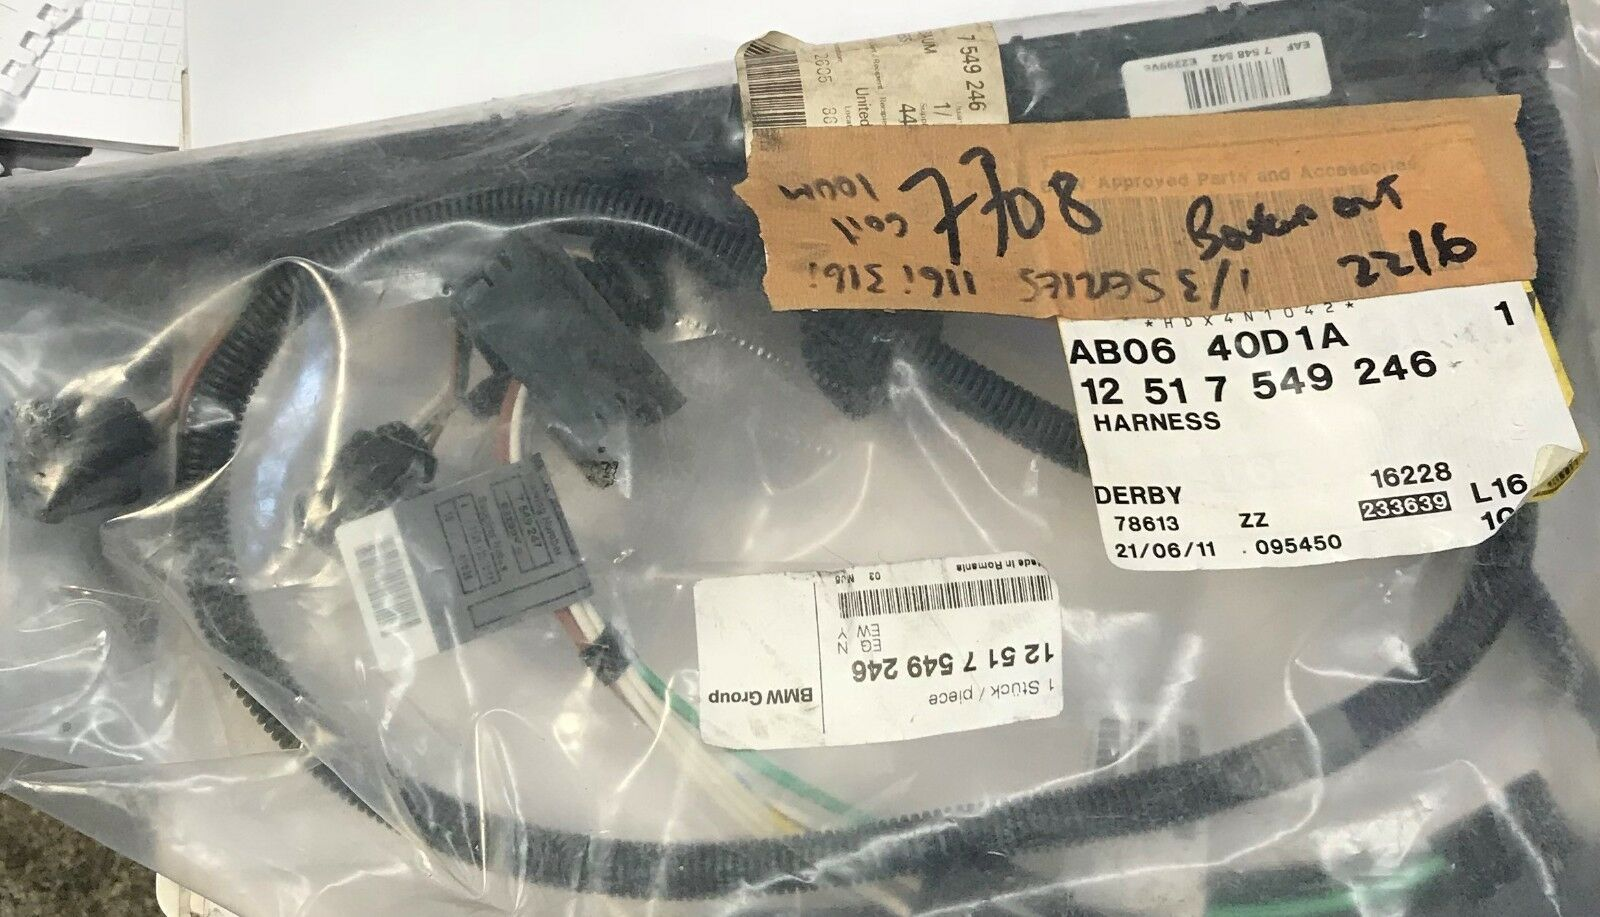 Bmw 1 Series 3 E87 E90 Ignition Coil Wiring 12517549246 Brand Harness New Genuine Of 12only Available